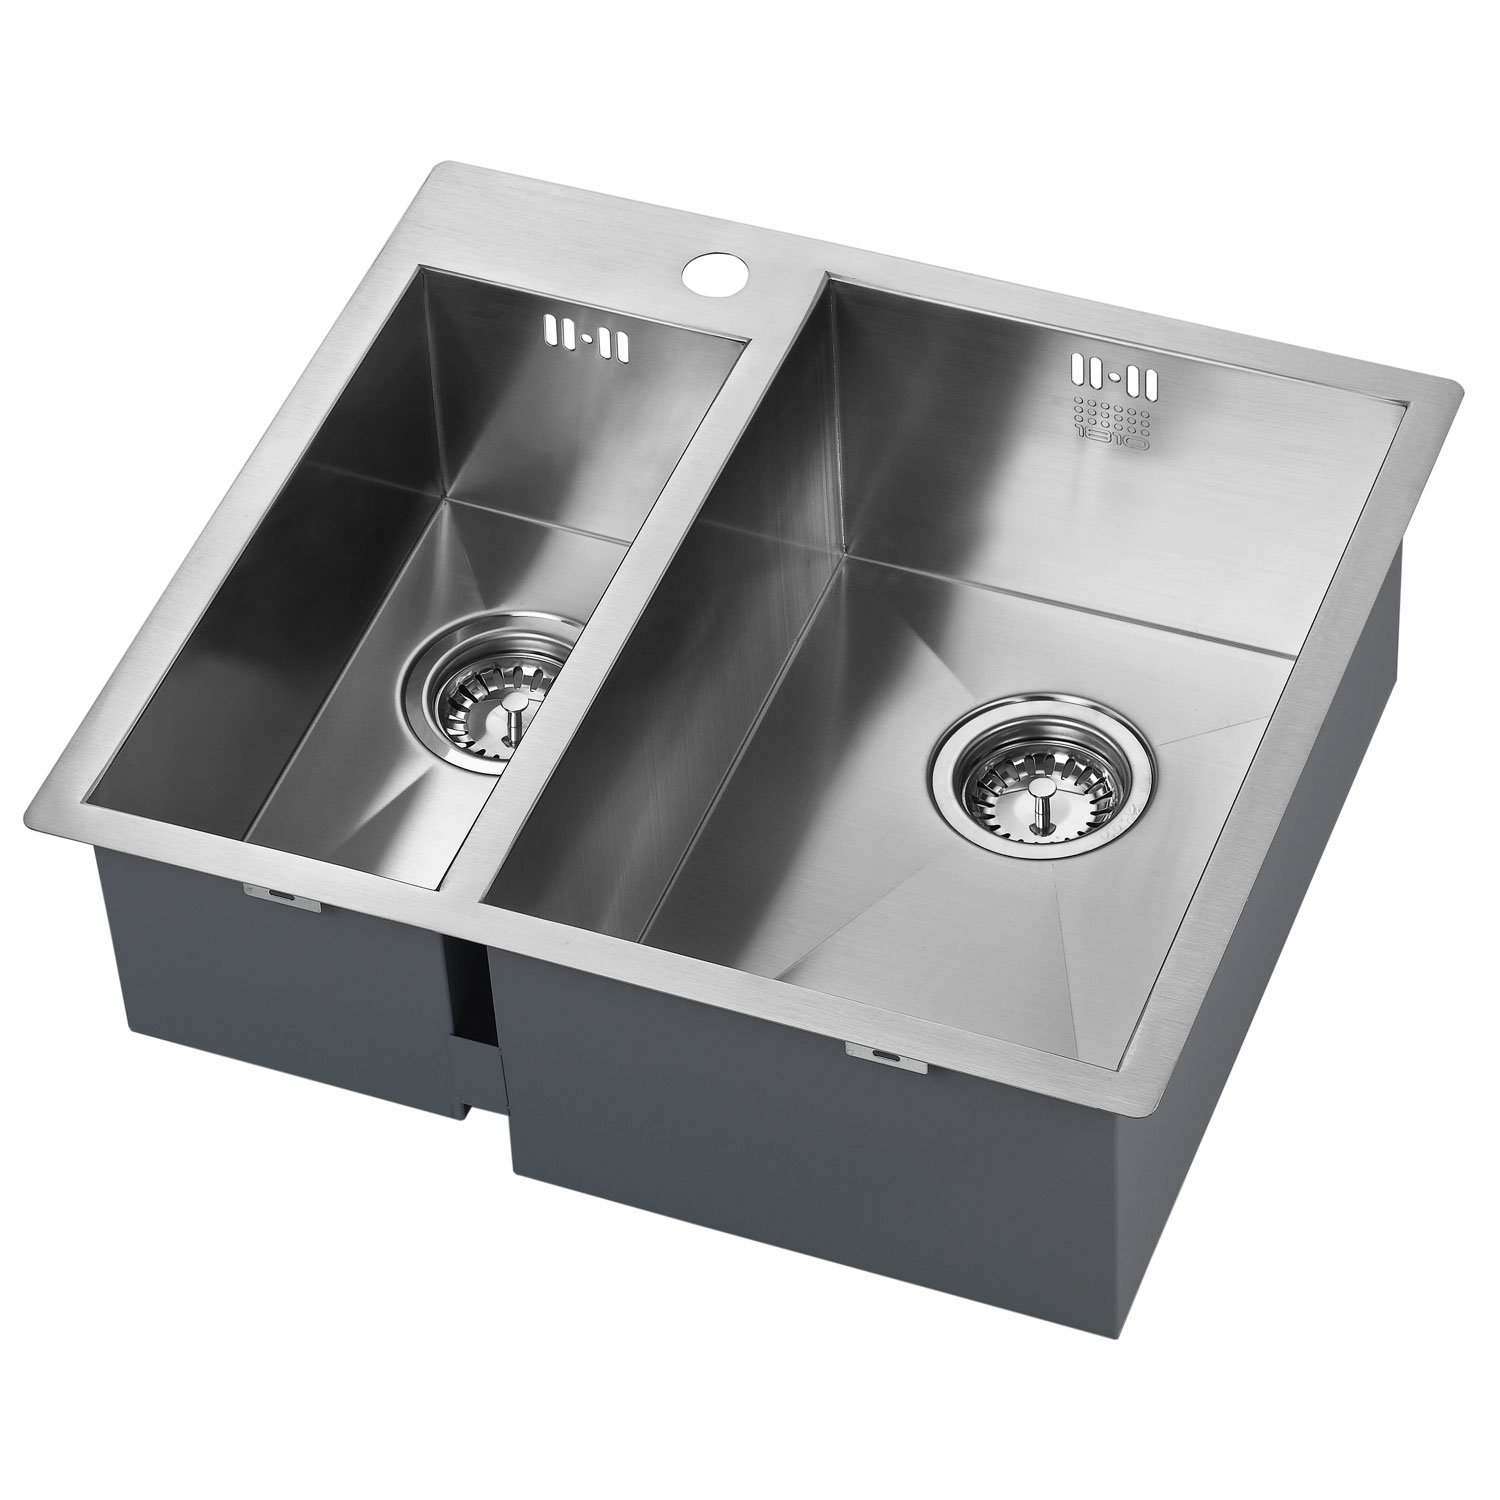 The 1810 Company Zenduo 180/310 I-F 1.5 Bowl Kitchen Sink - Right Hand-0